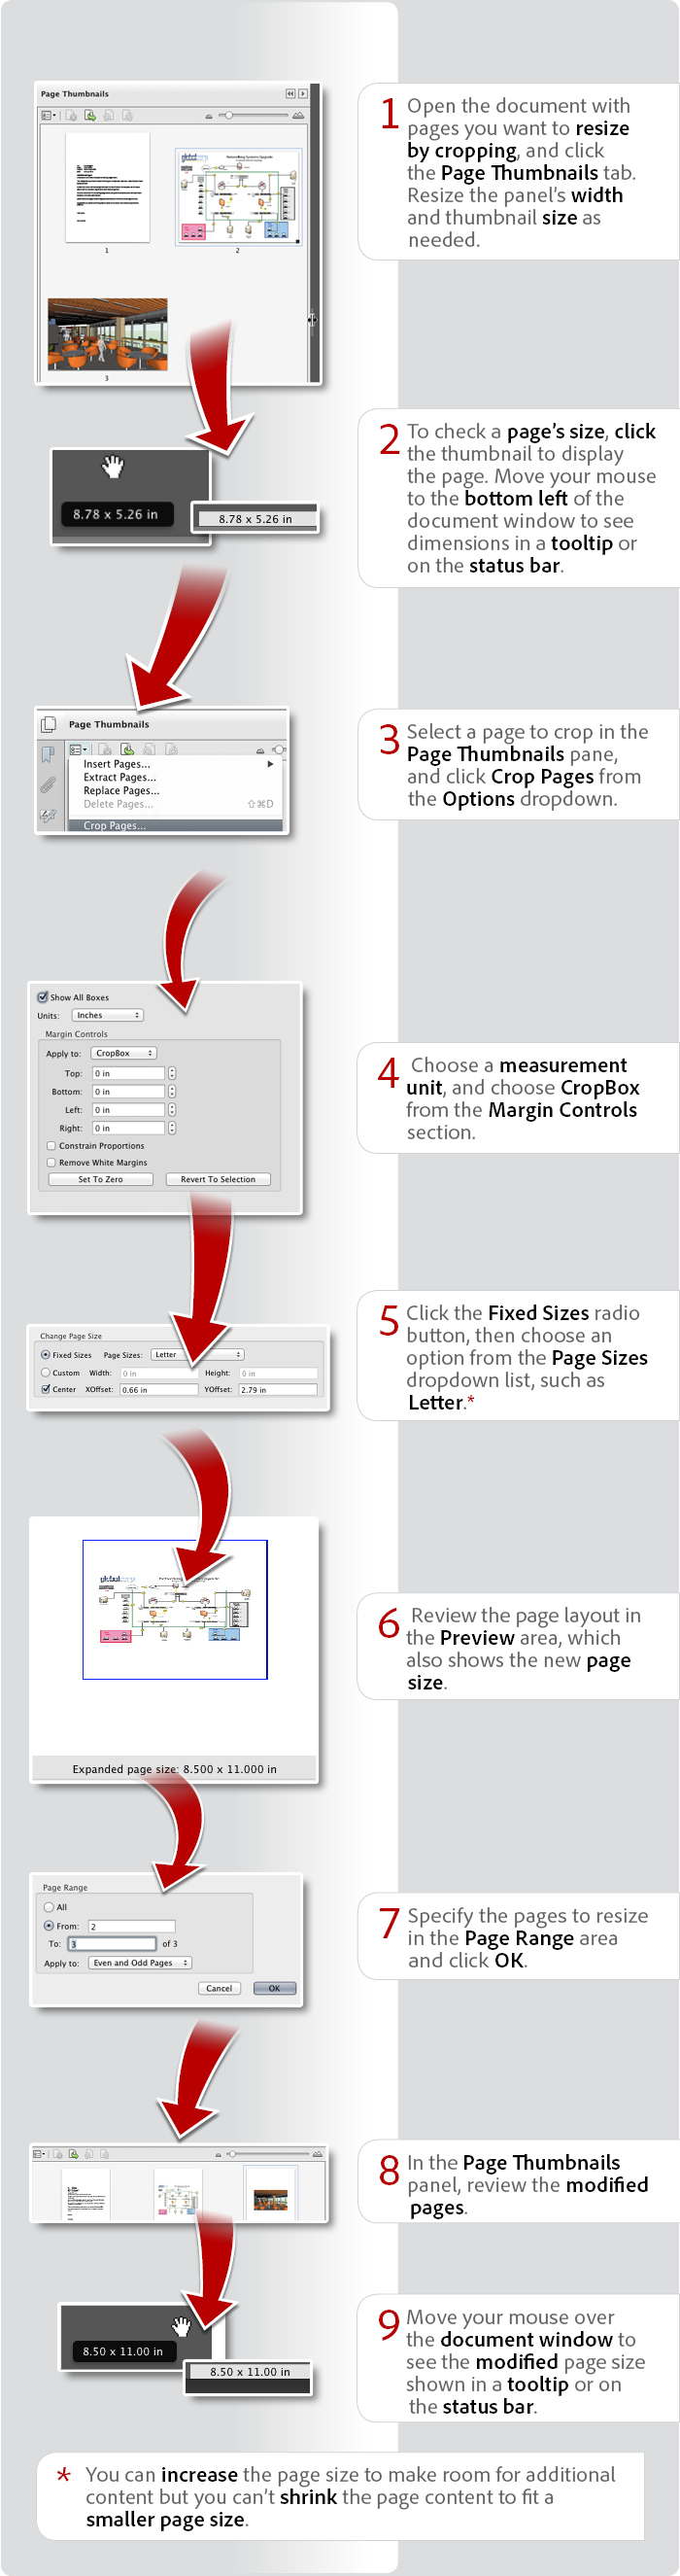 how to resize a pdf in adobe acrobat